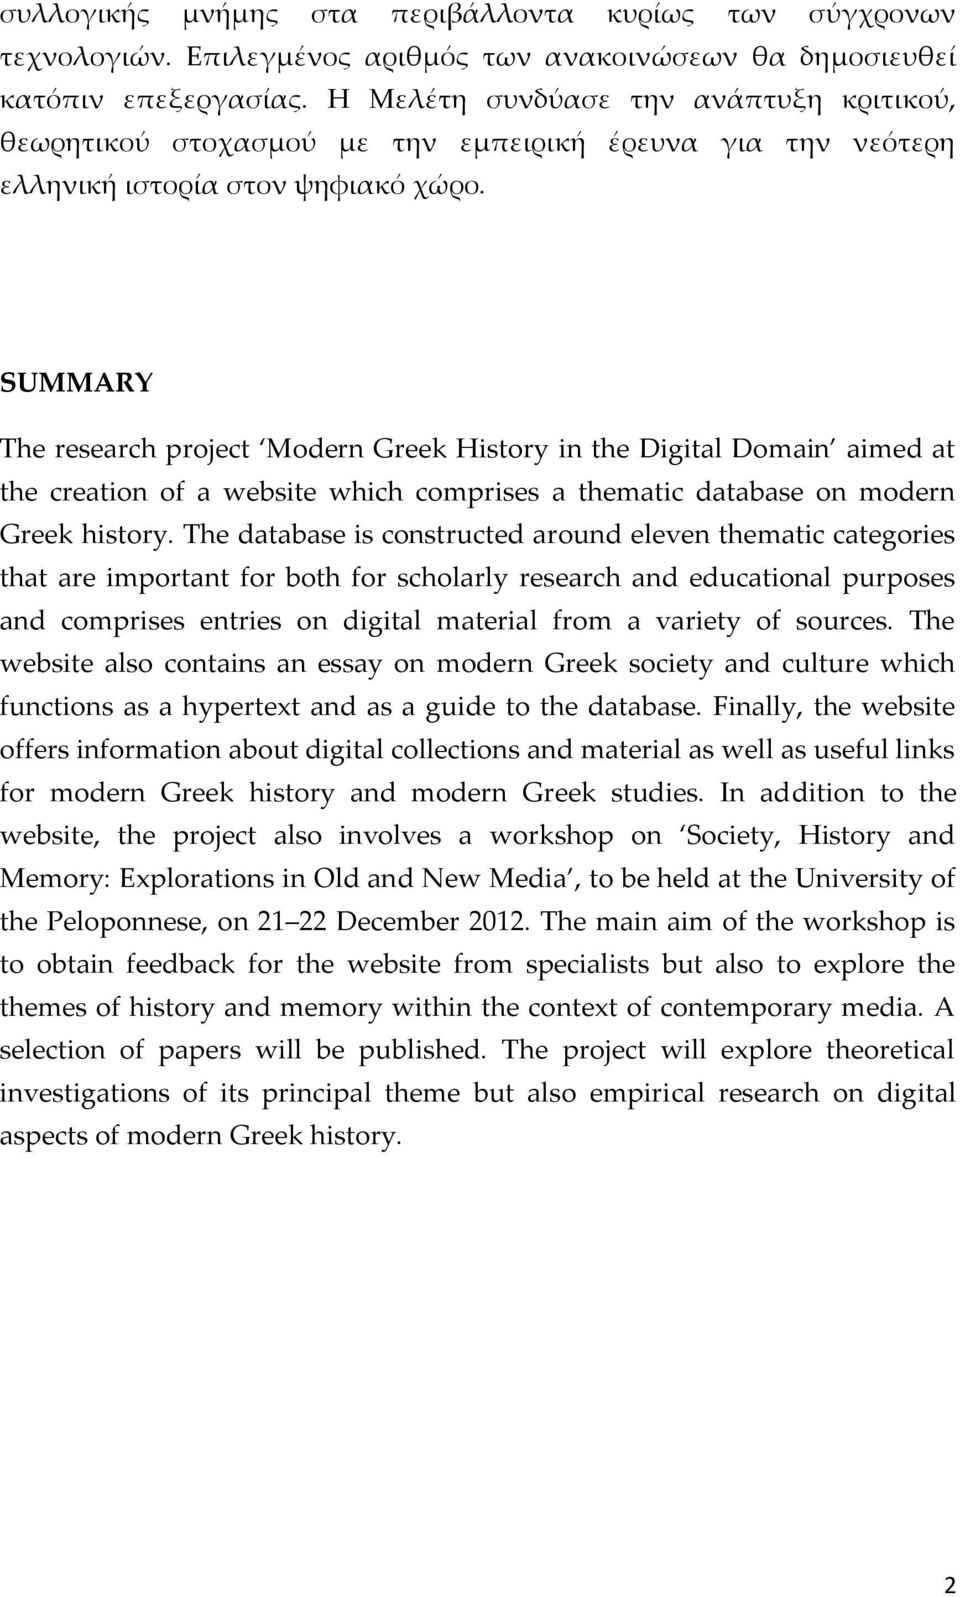 SUMMARY The research project Modern Greek History in the Digital Domain aimed at the creation of a website which comprises a thematic database on modern Greek history.